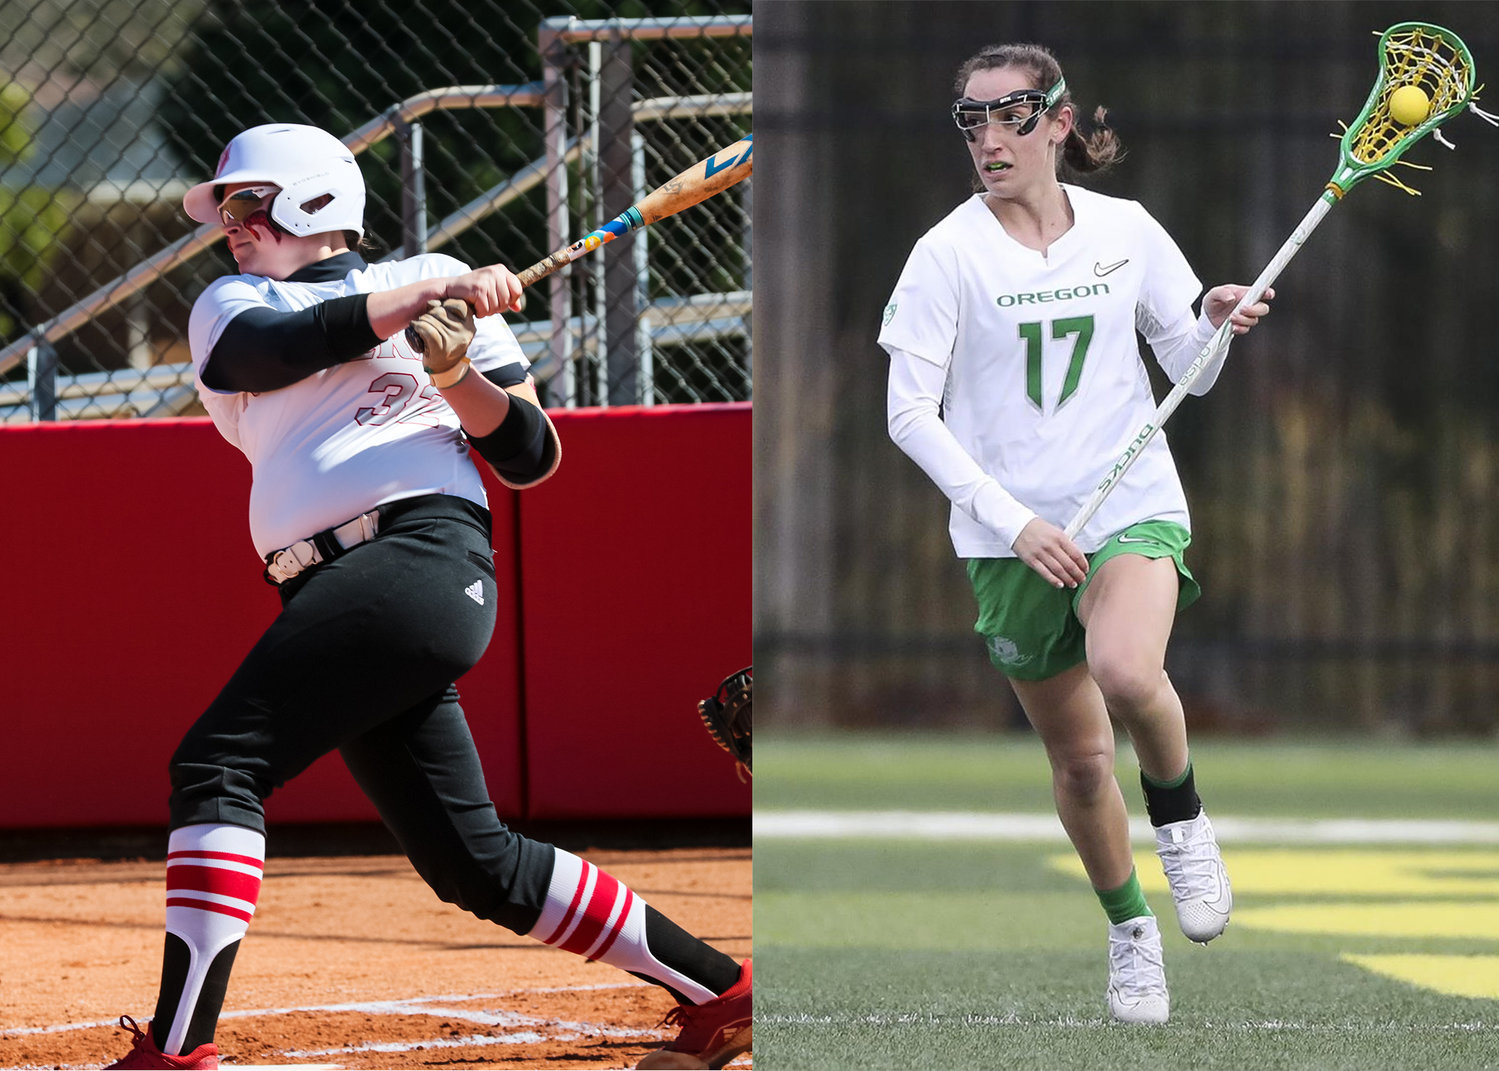 Haley Simonds had recently become the conference's all-time leader in runs batted in before her senior season at Newberry College was cut short by the coronavirus crisis. Claire Domshick was off to a strong start to her junior season for the University of Oregon women's lacrosse team when her season came to and end.